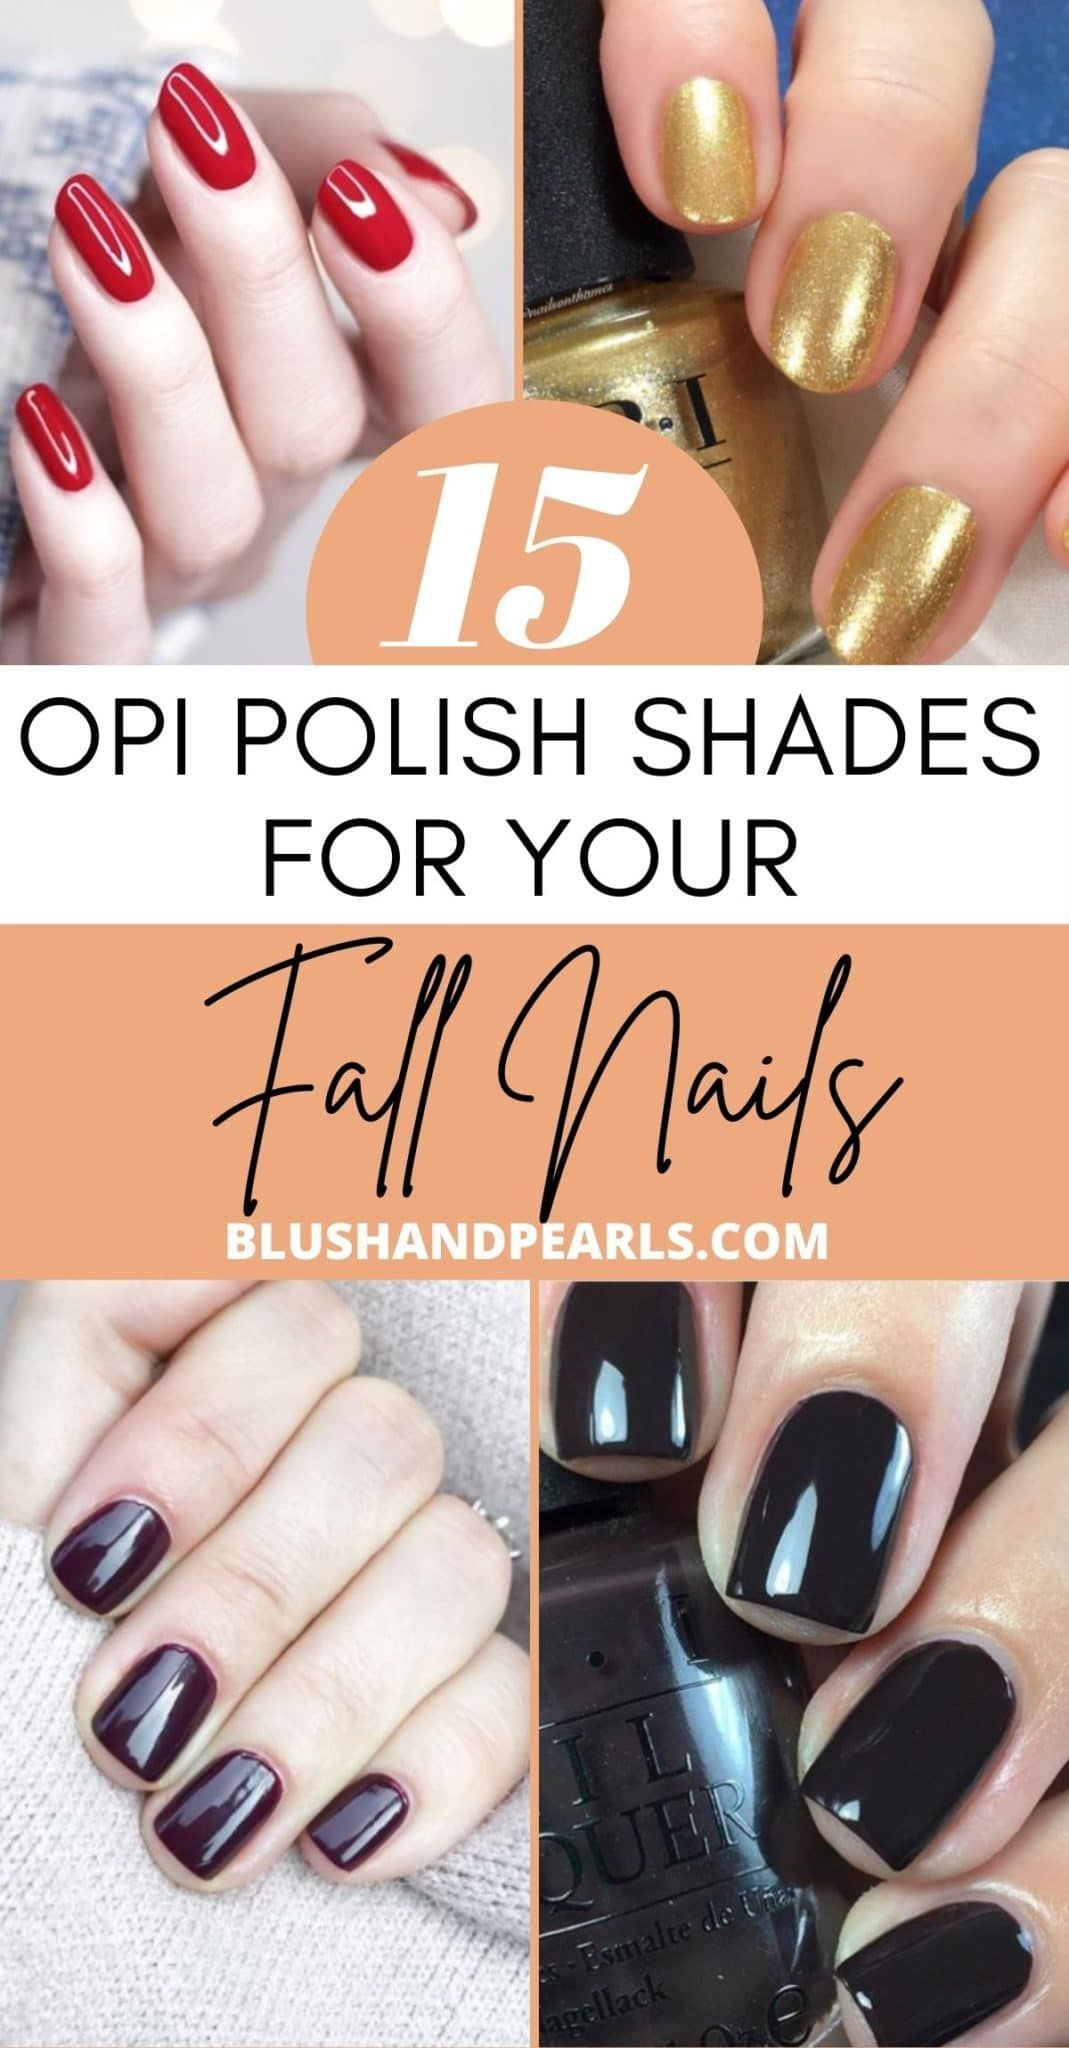 15 Must Have Fall Nail Colors From Opi Blush Pearls Fall Nails Opi Nail Colors Opi Nail Colors